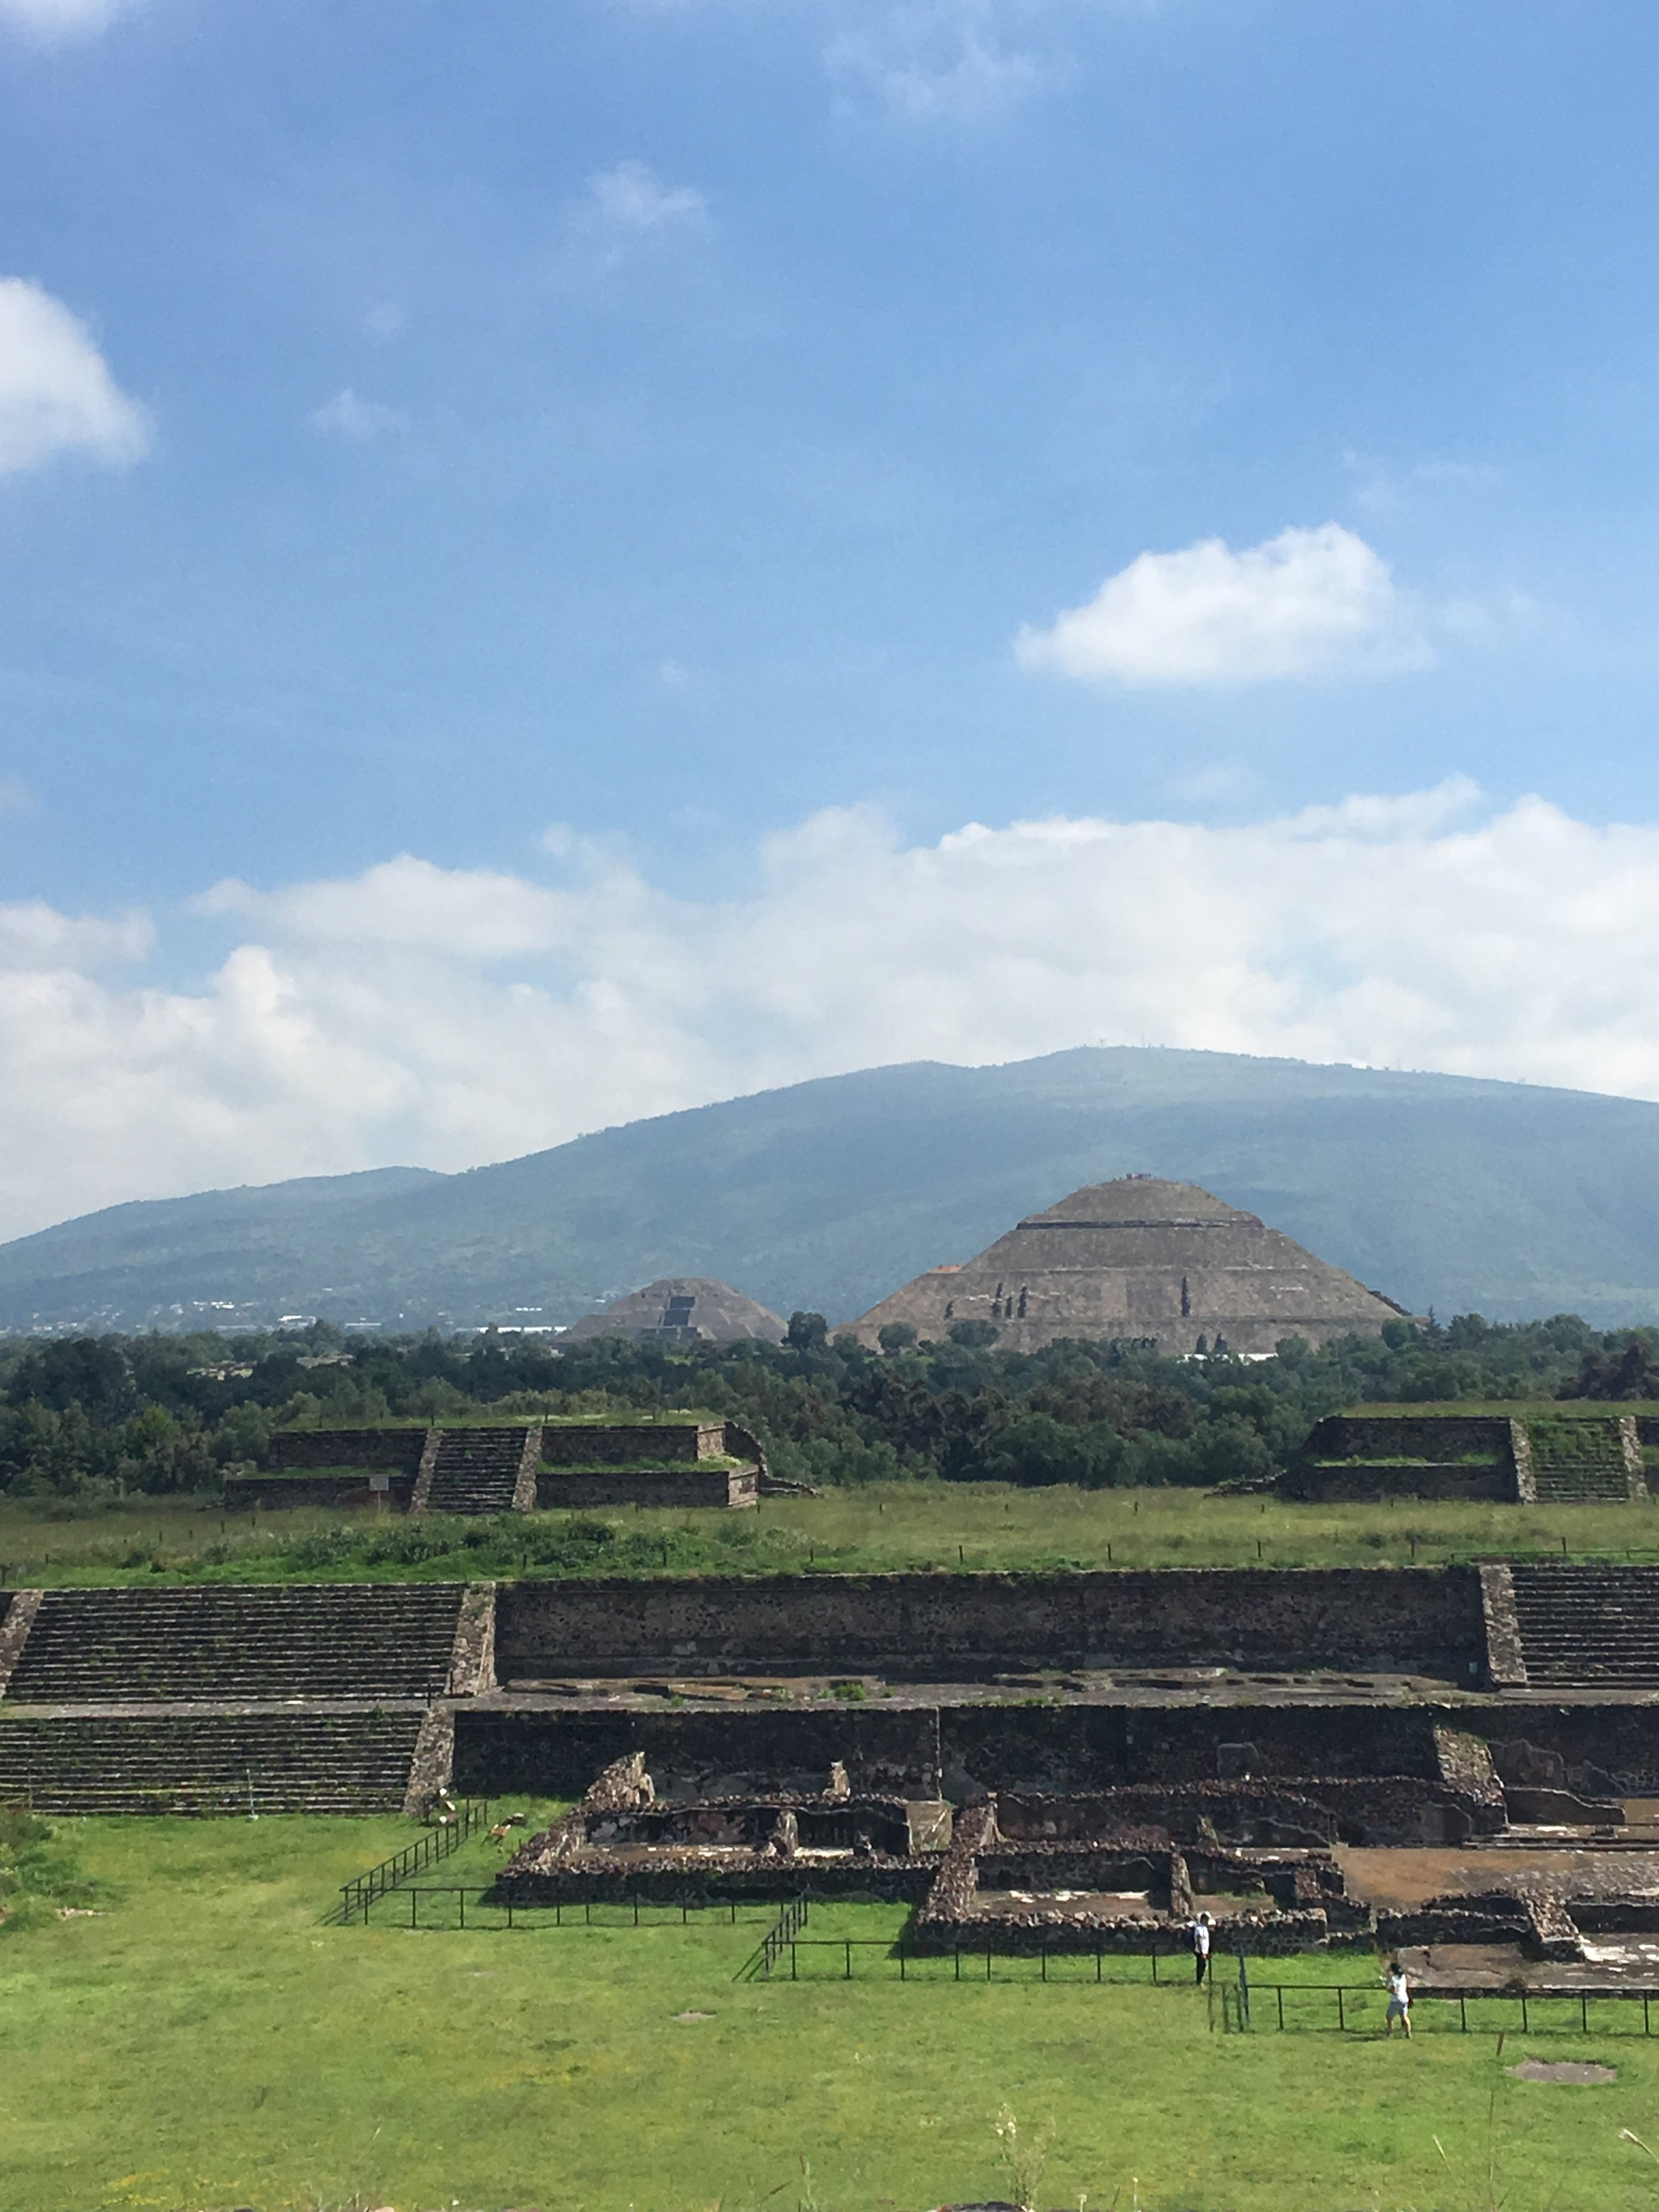 The view of the Pyramid of the Moon (center) and Pyramid of the Sun (right) from the Temple of the Feathered Serpent